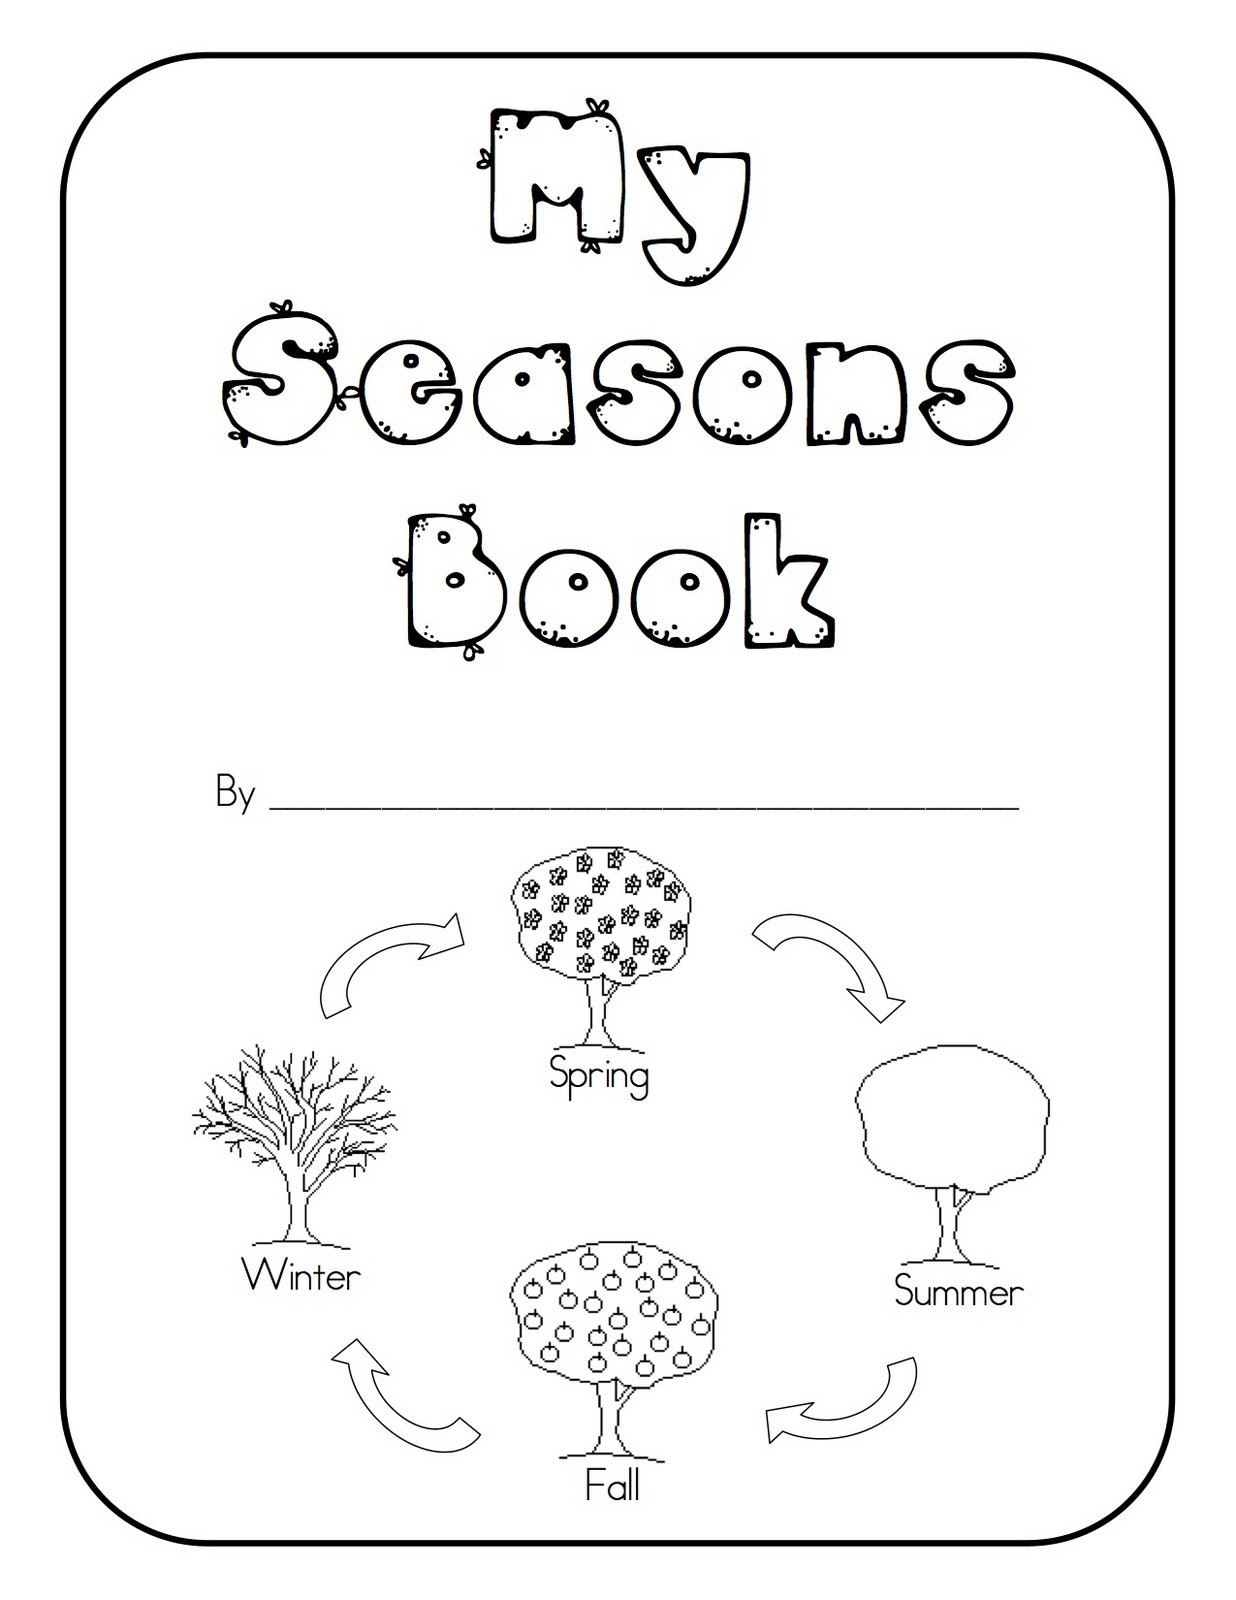 1st Grade Weather Worksheets Weather Worksheet New Changes and Climate Worksheets Seasons